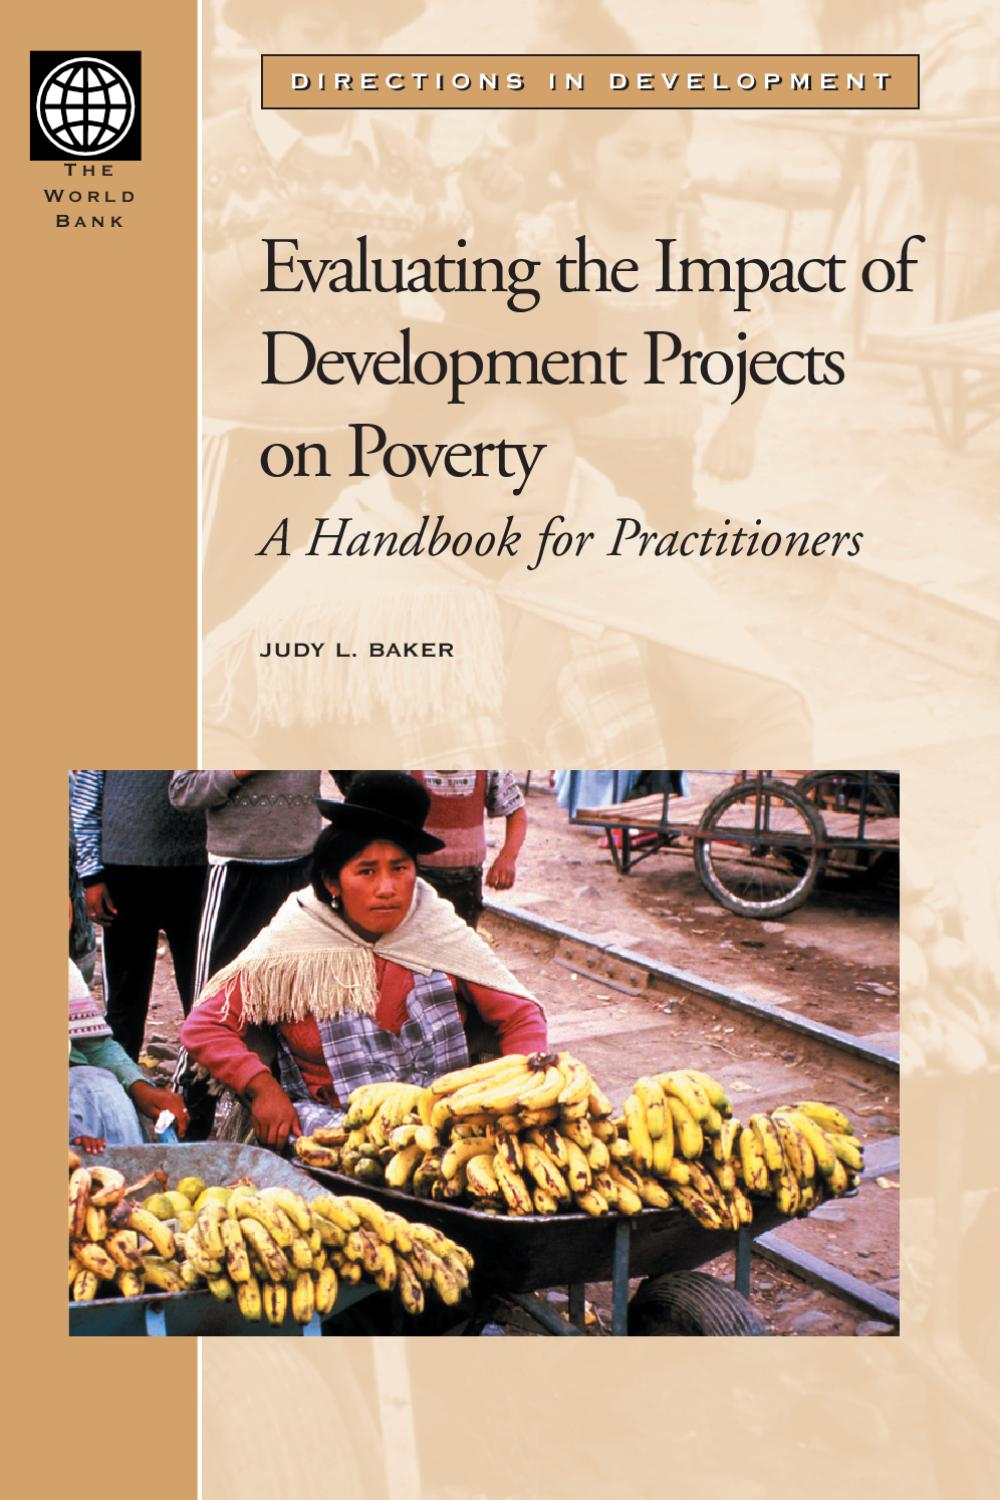 poverty and its impact on development The connection between poverty and the economy rob grunewald  it makes sense that poverty rates are related to the overall health of the economy.